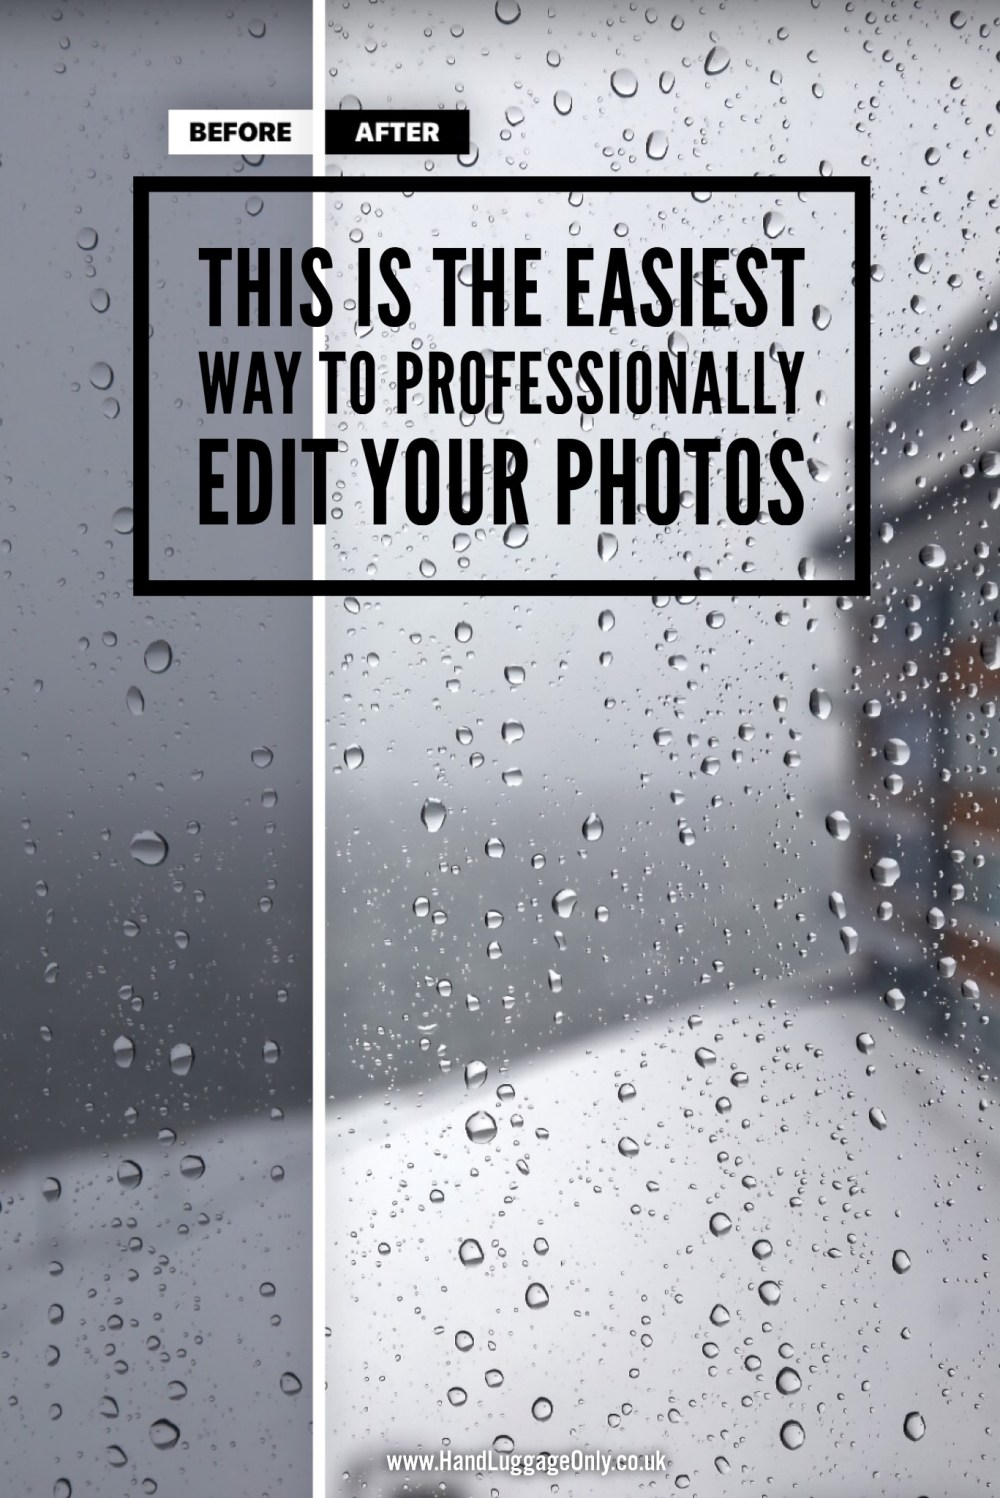 This Is The Easiest Way To Professionally Edit Your Photos